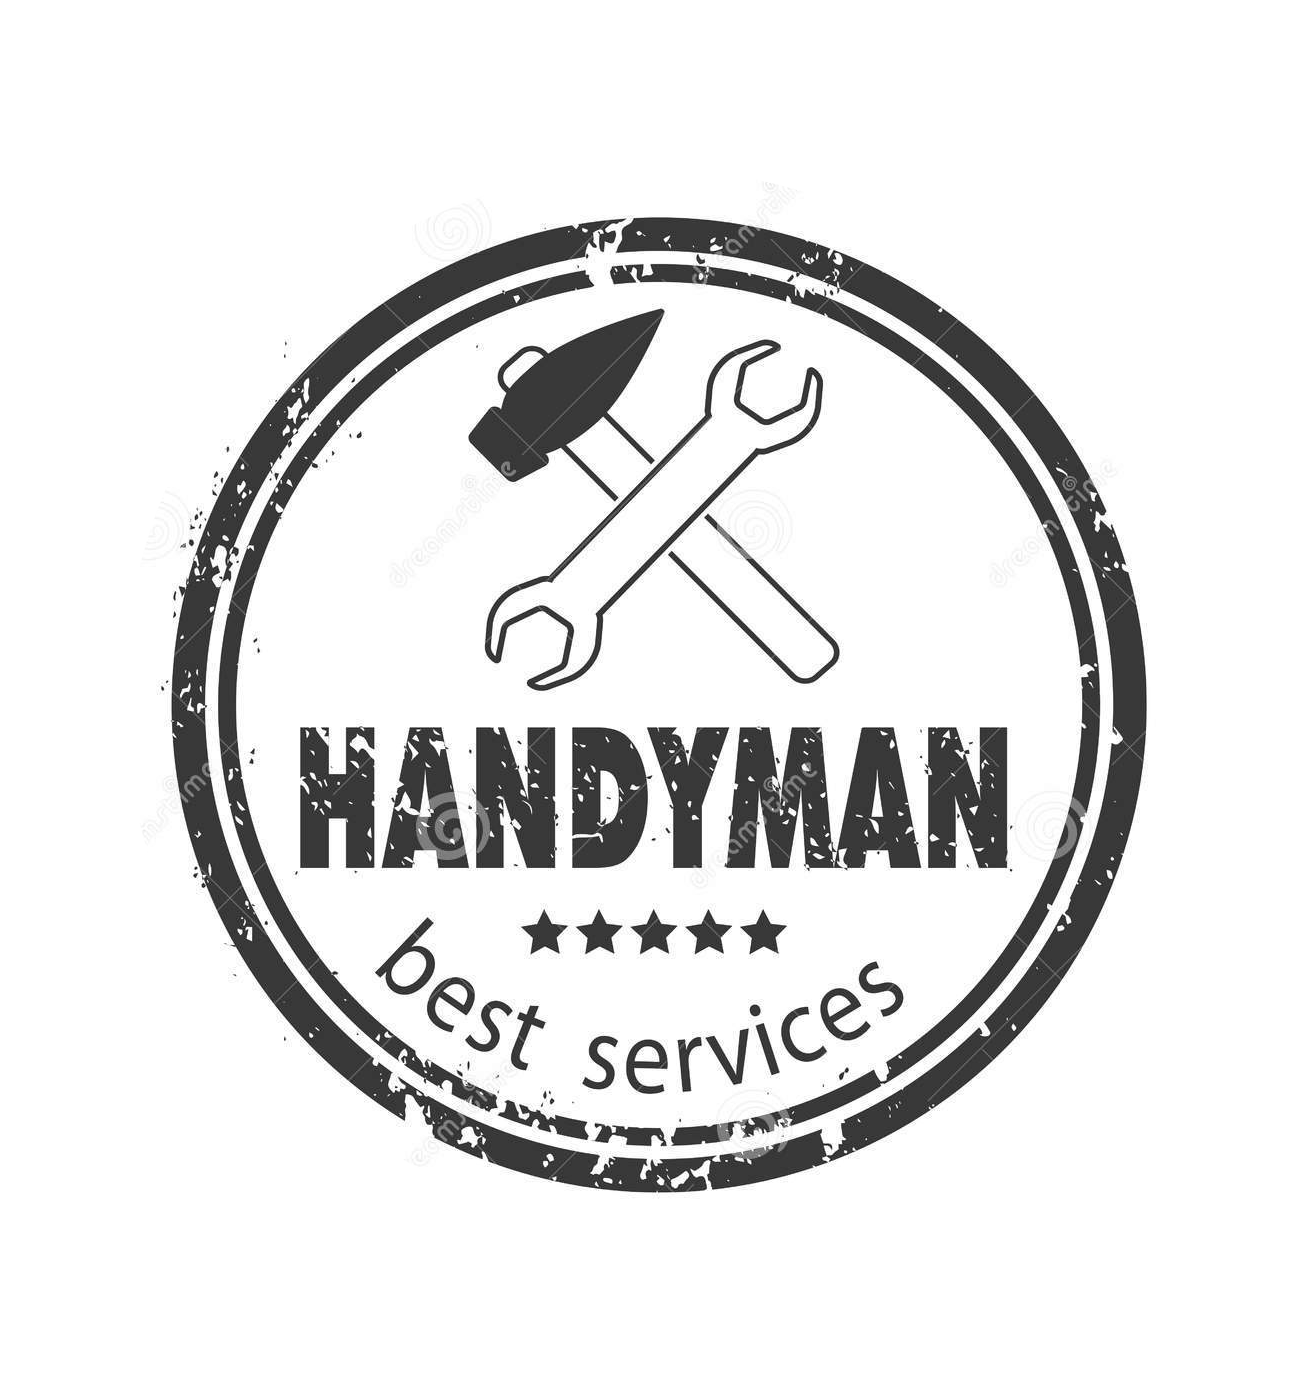 handyman-services-design-your-logo-emblem-grey-stamp-white-background-set-workers-tools-stock-flat-85749815